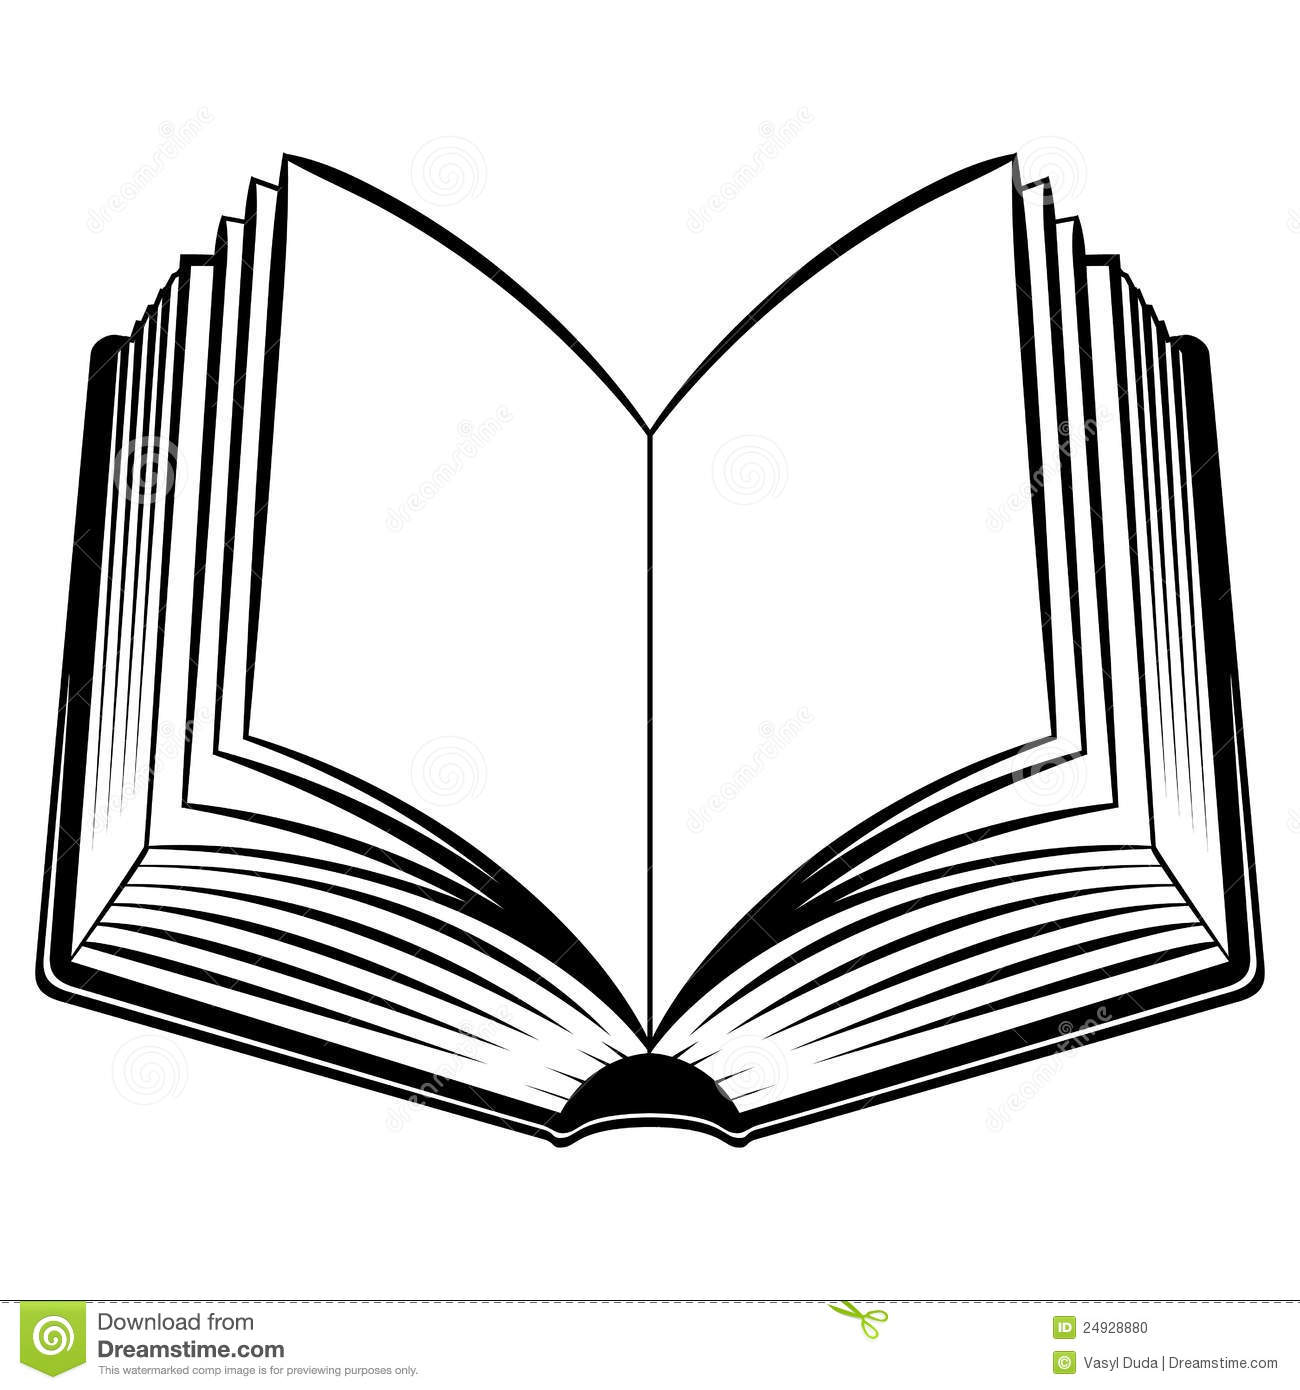 hight resolution of open book outline clipart